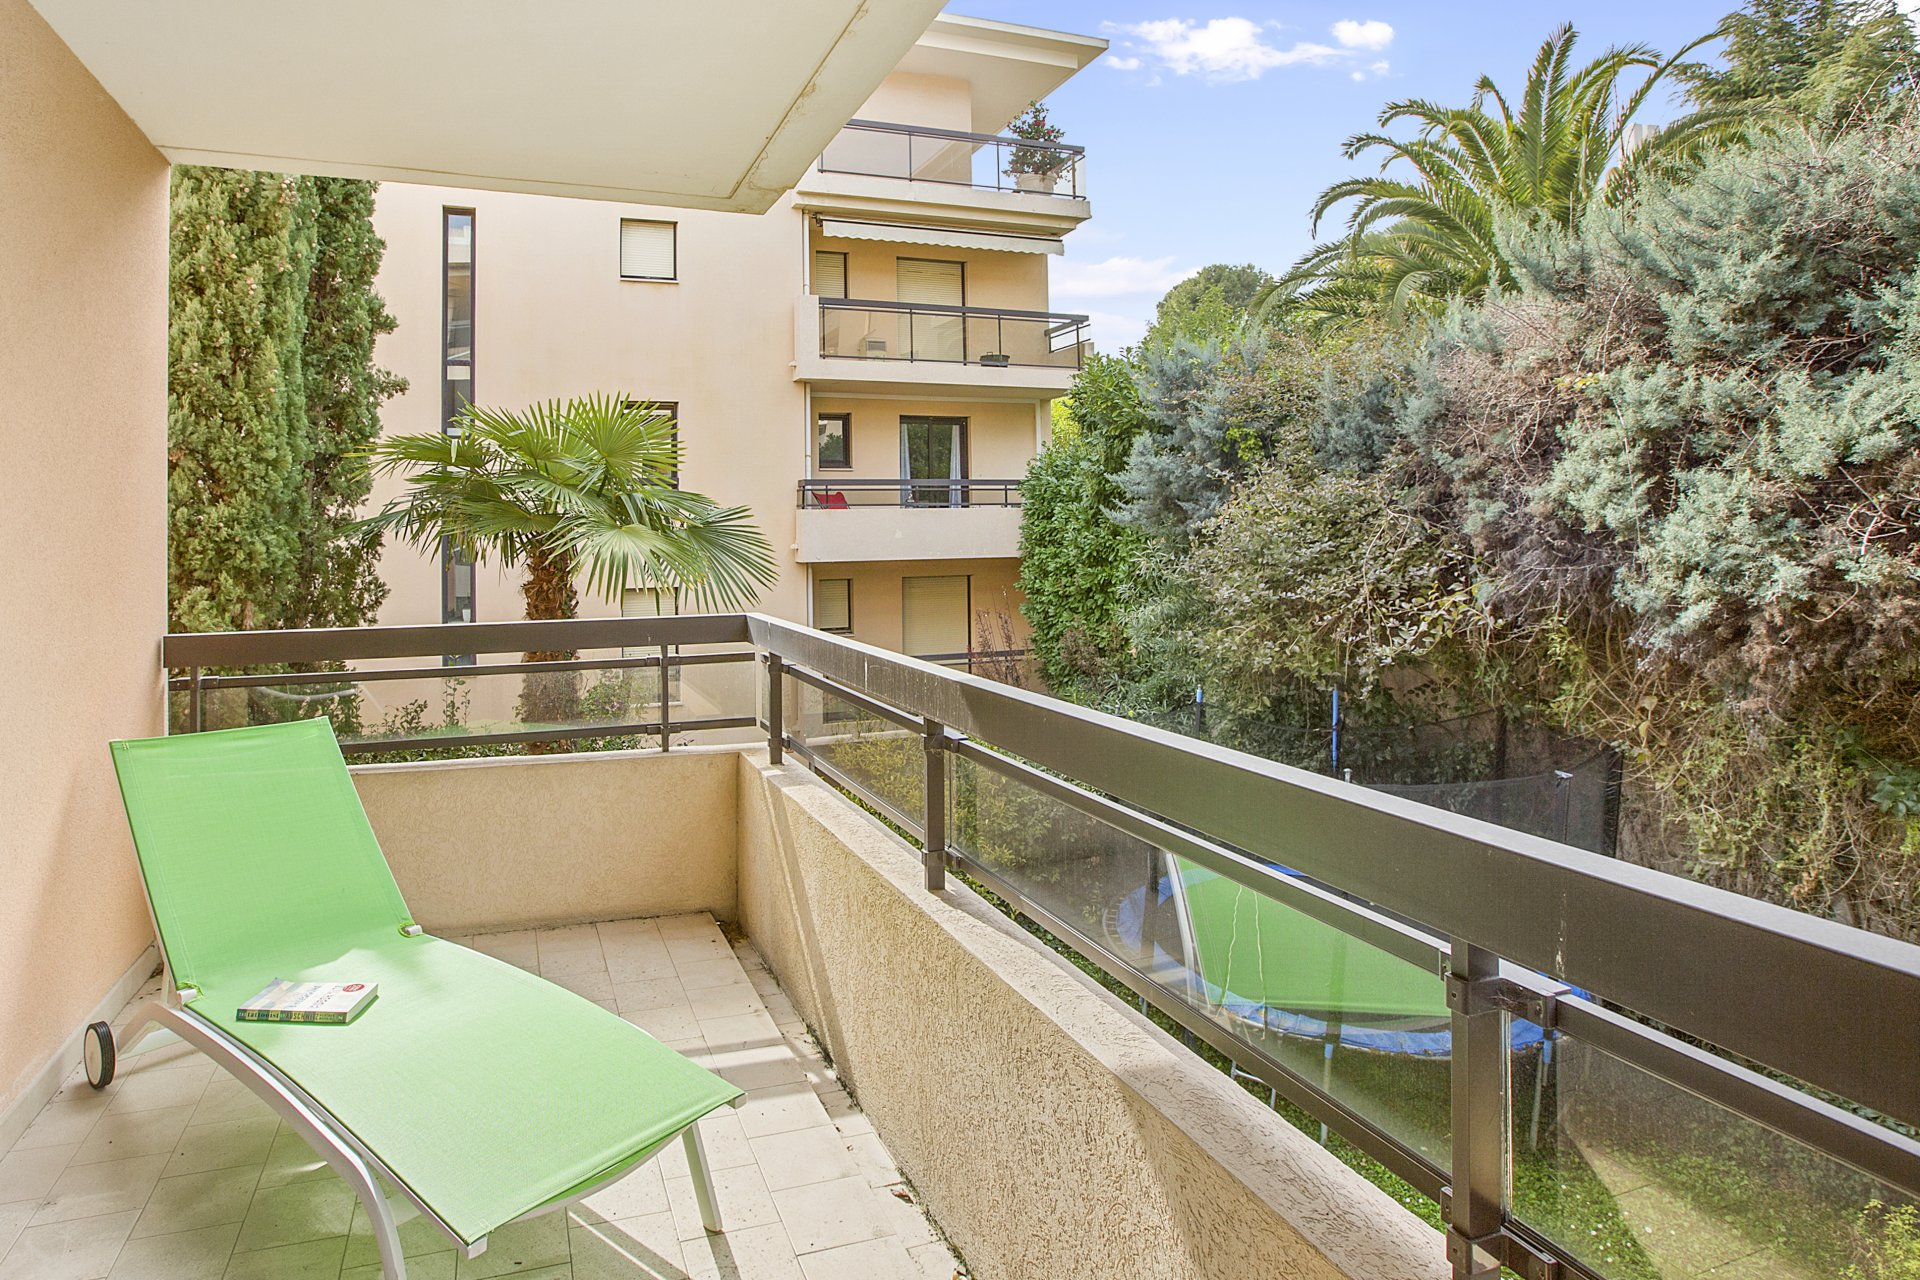 3 bed apartment in quiet residential area of Cannes - Montrose